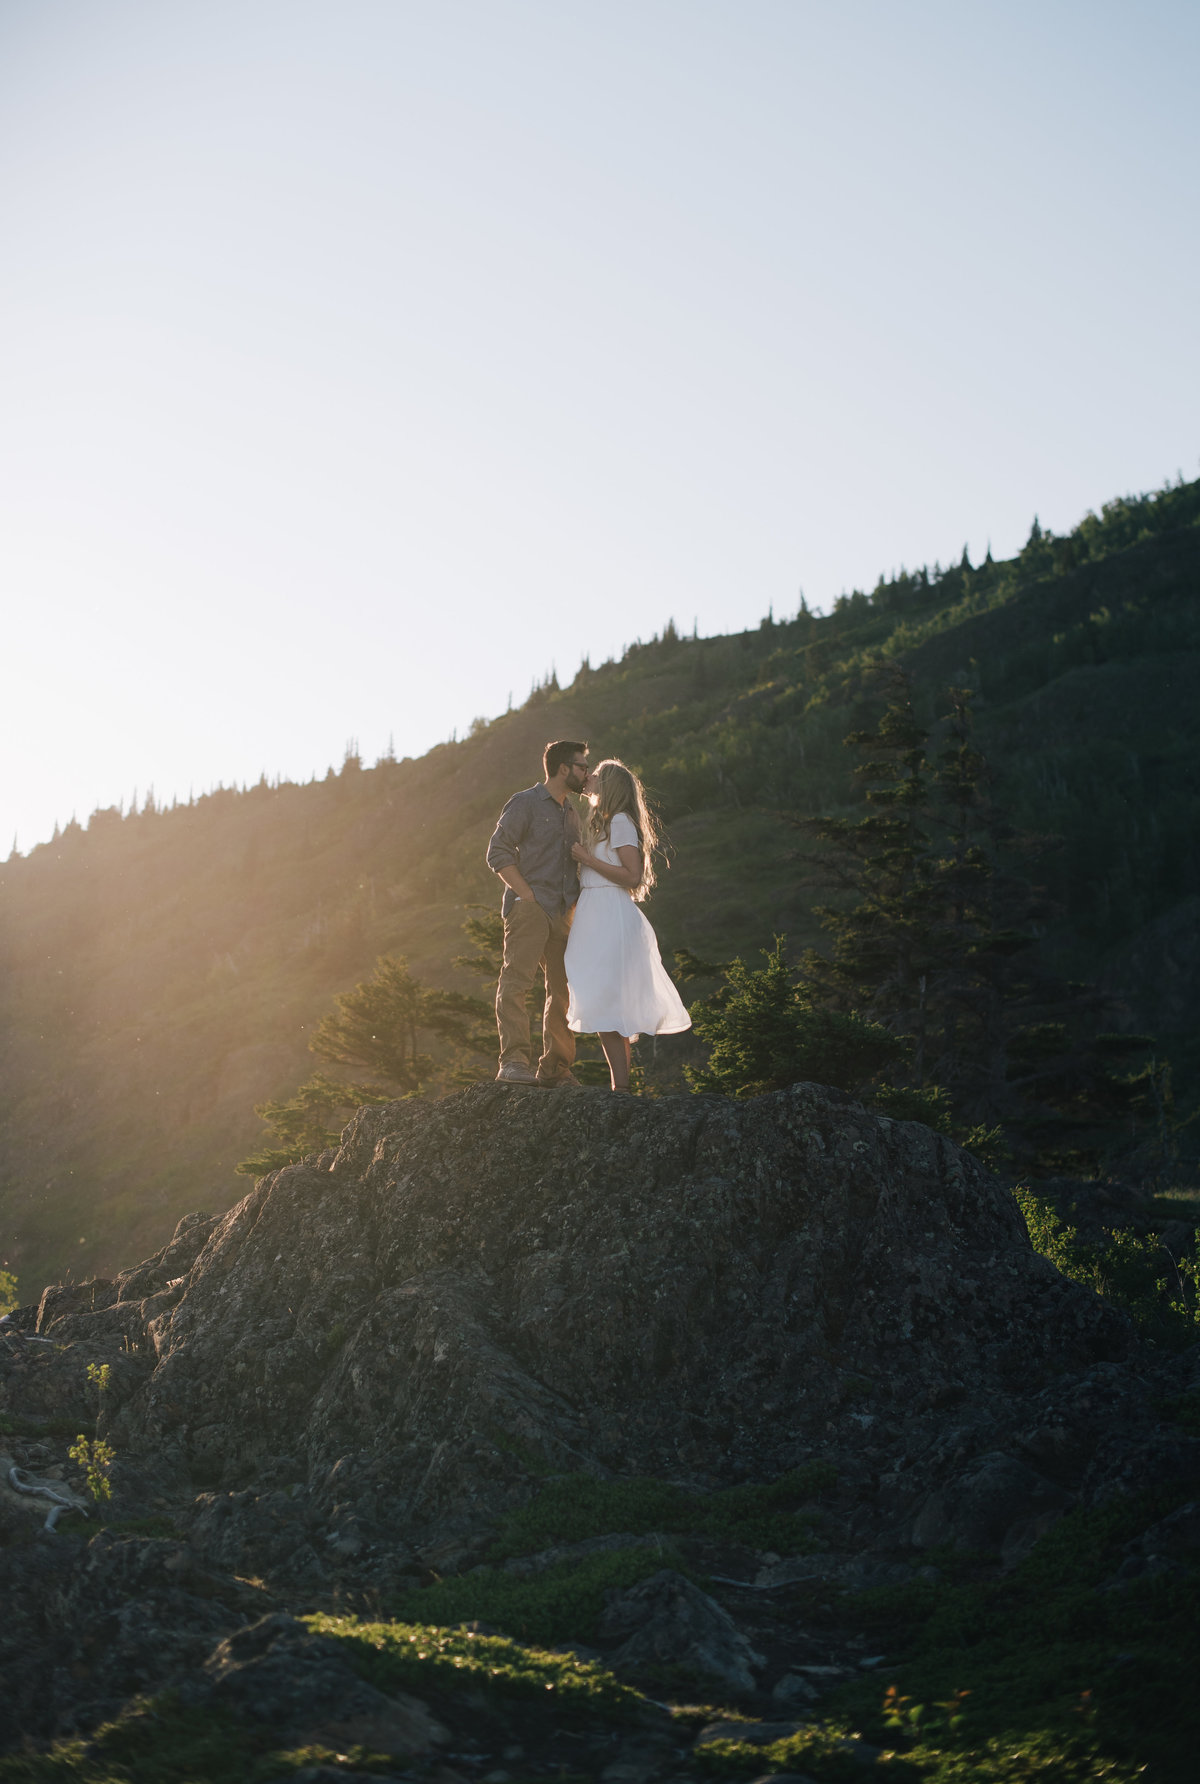 017_Erica Rose Photography_Anchorage Engagement Photographer_Featured